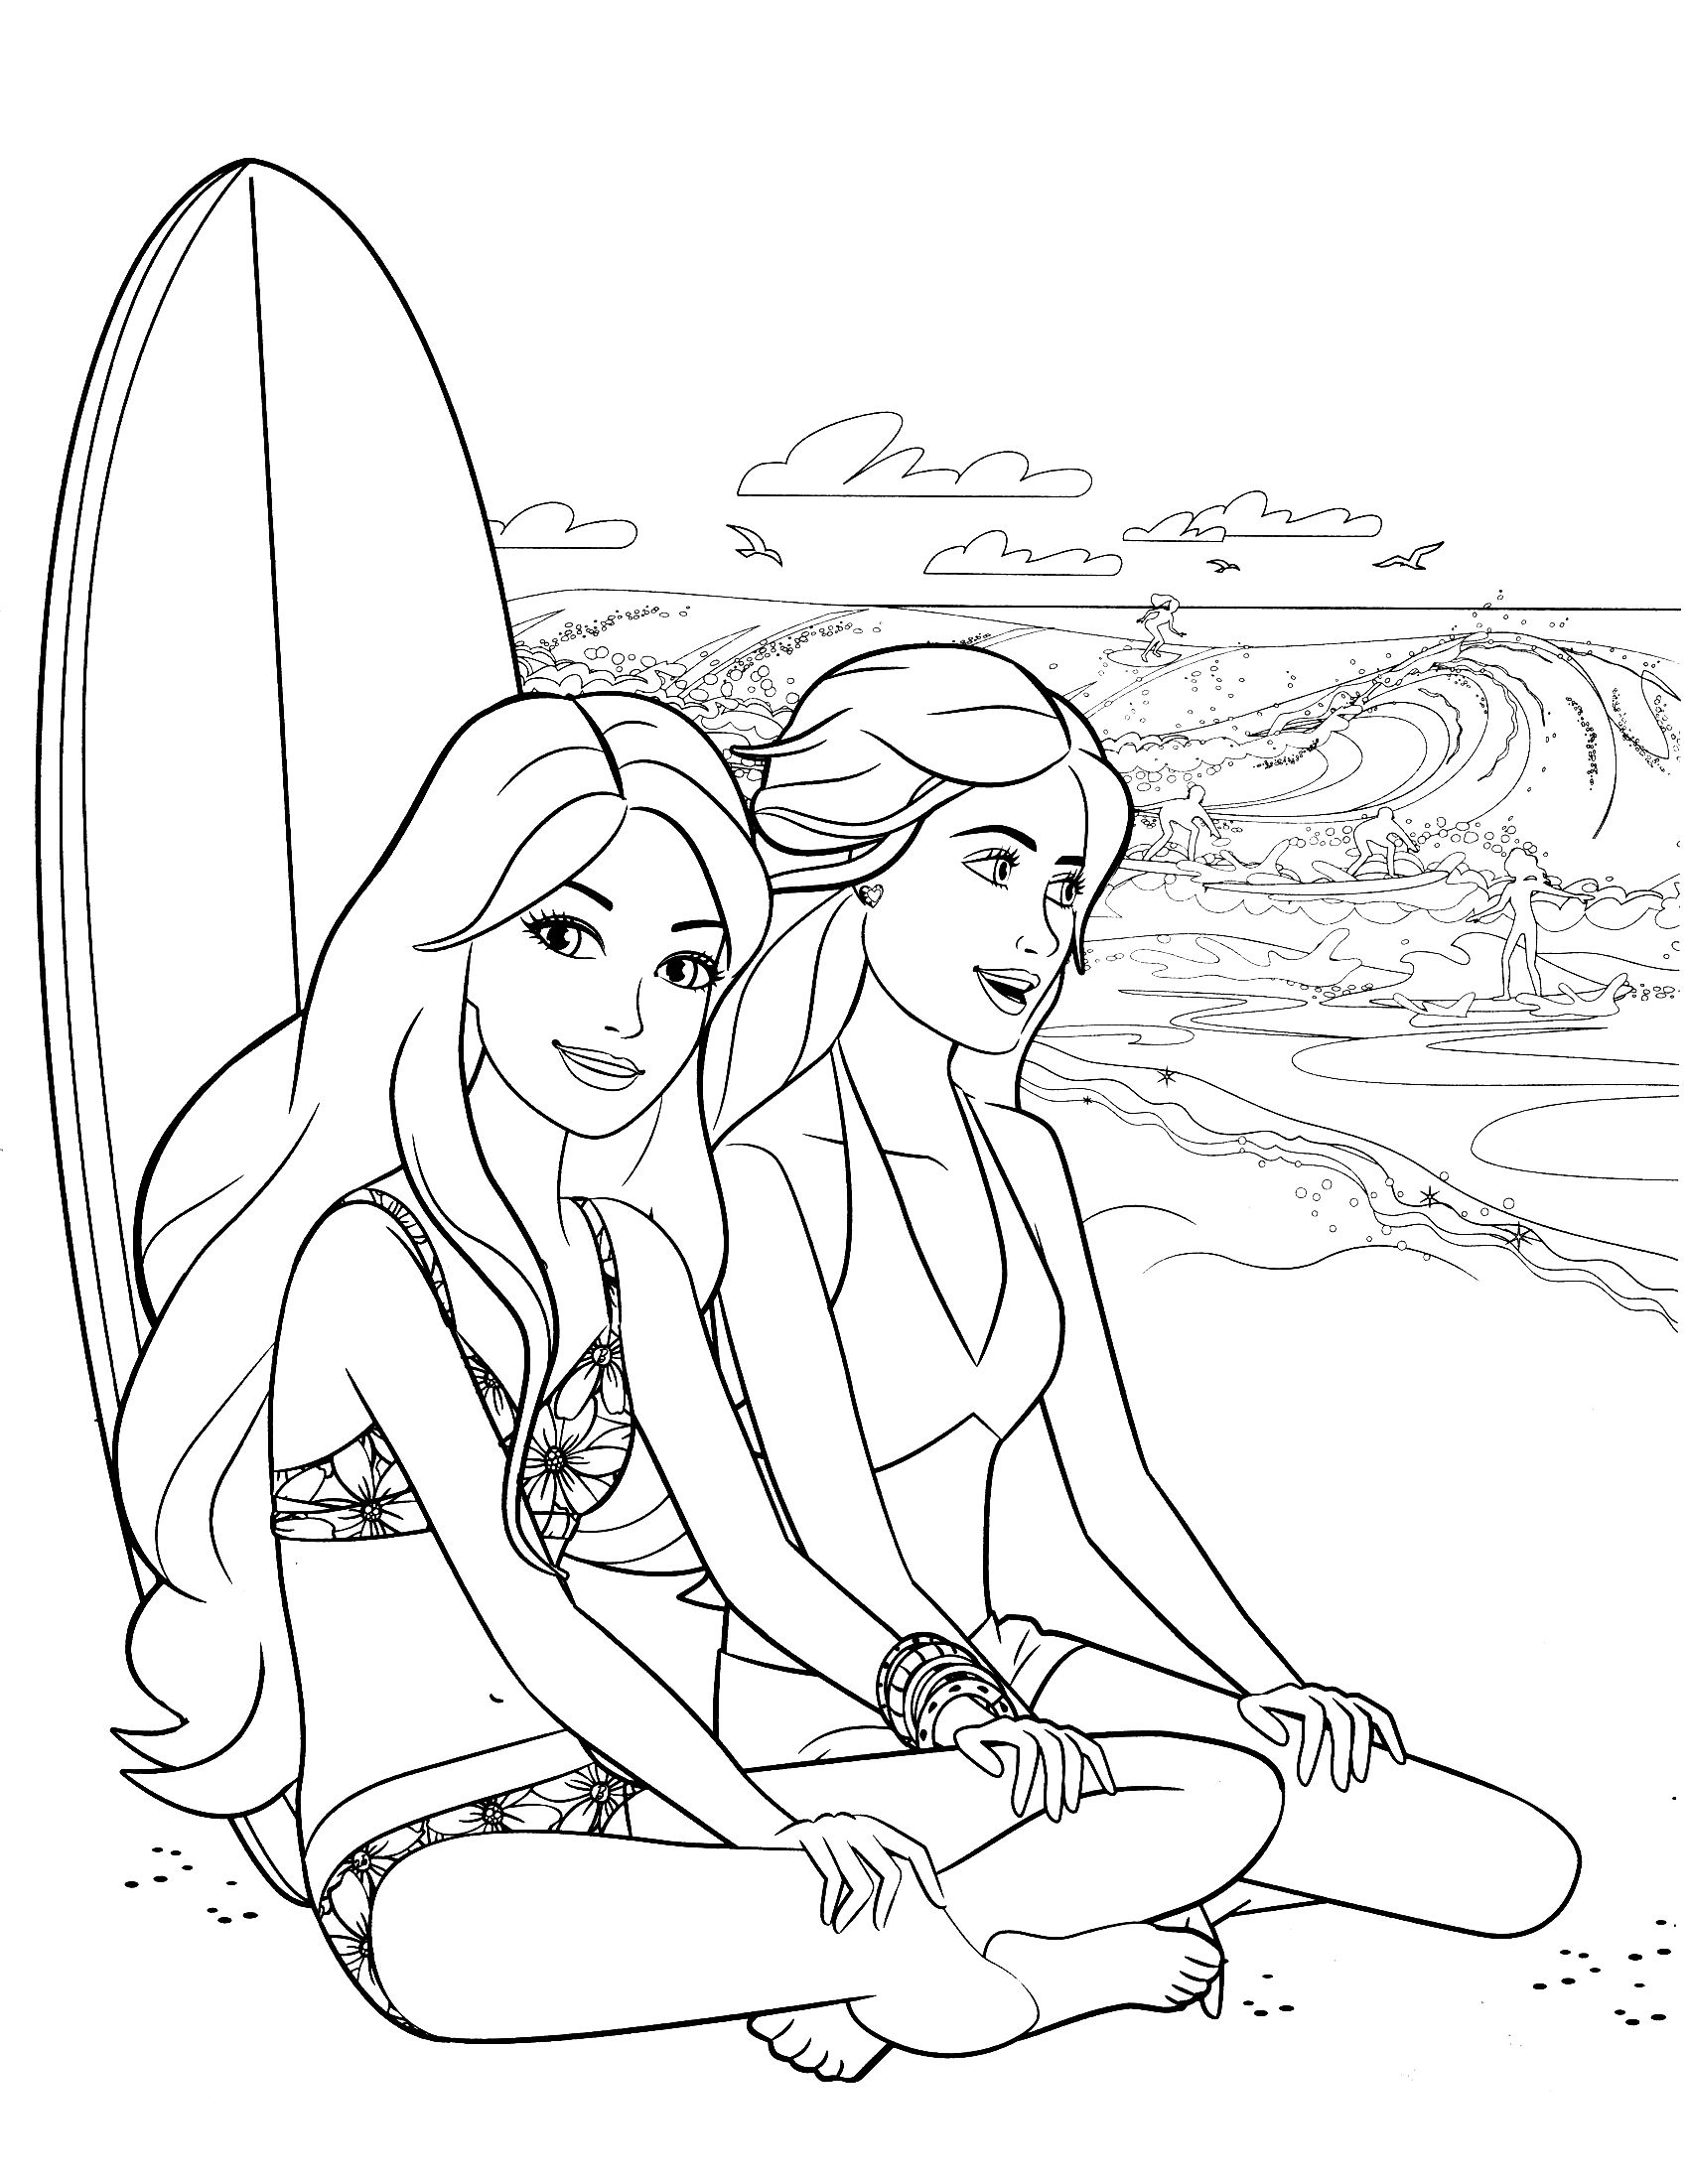 barbie doll pictures to print stylish barbie coloring pages from barbie coloring pages doll barbie pictures to print